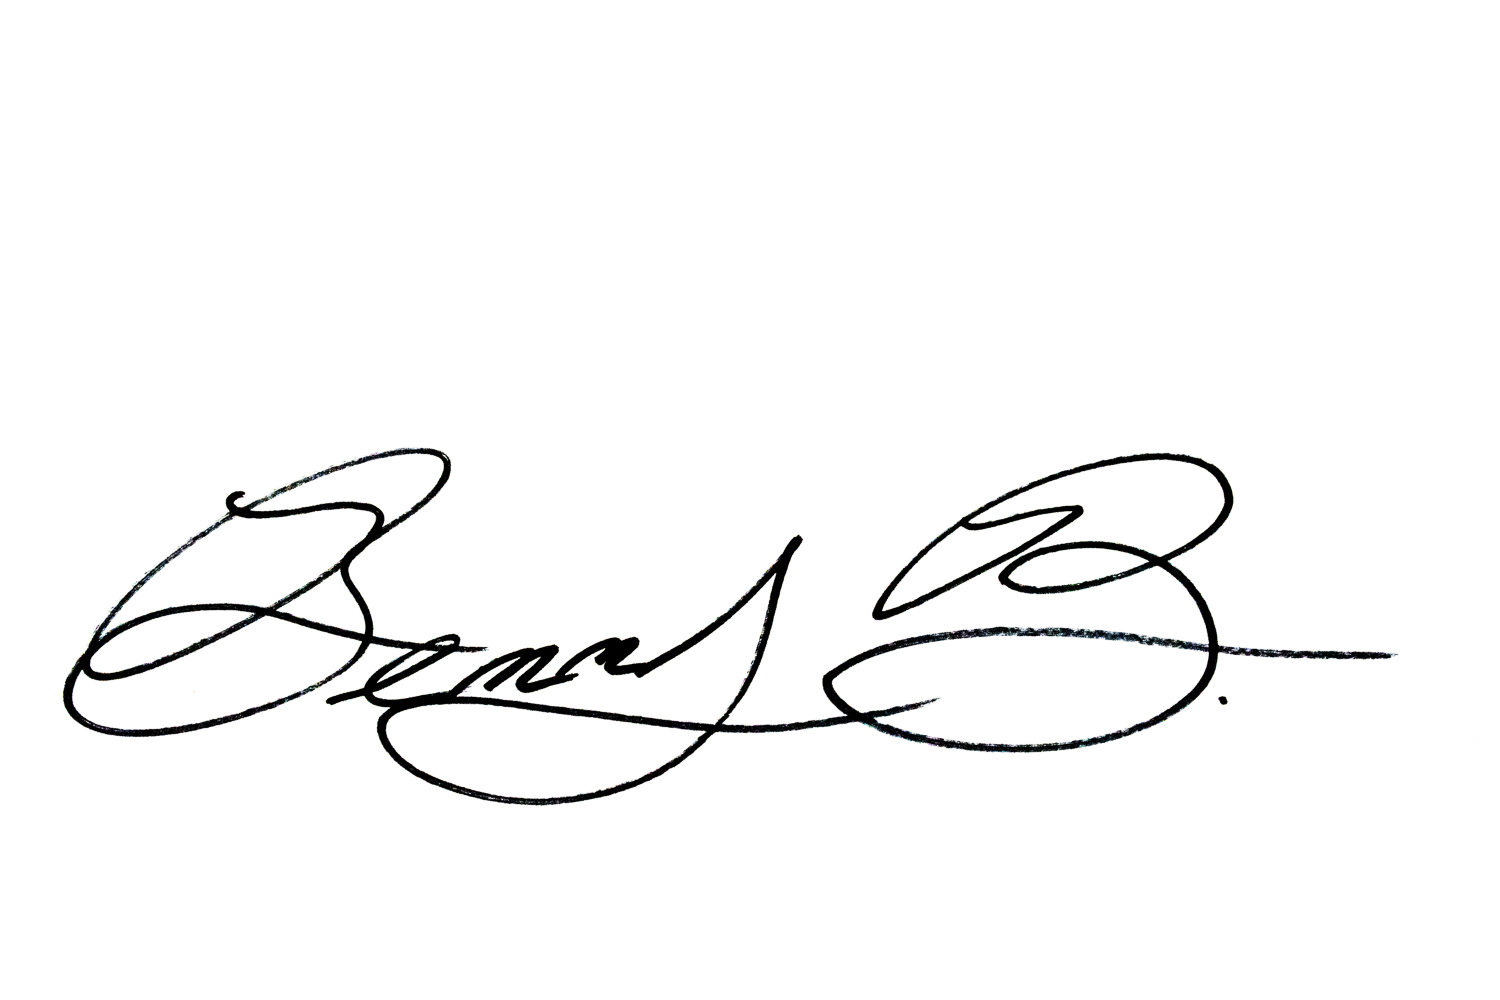 Ben bacon Signature